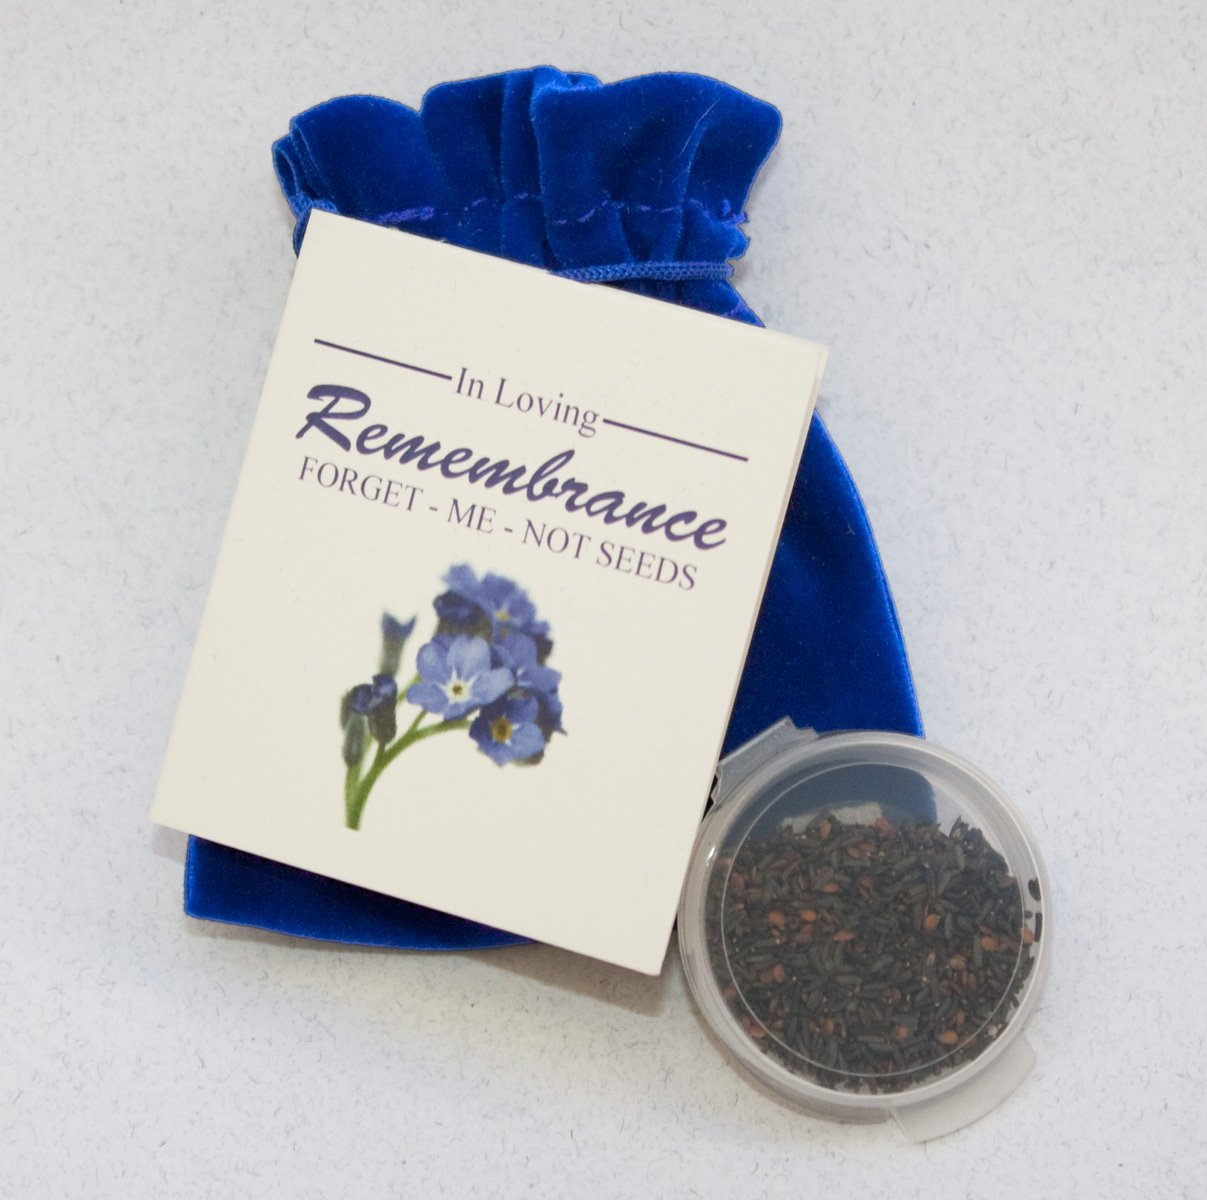 Forget-me-not seed Packets in Velvet Pouches - Funeral Favor or Funeral Gift - Personalized Plantable Celebration of Life (100)